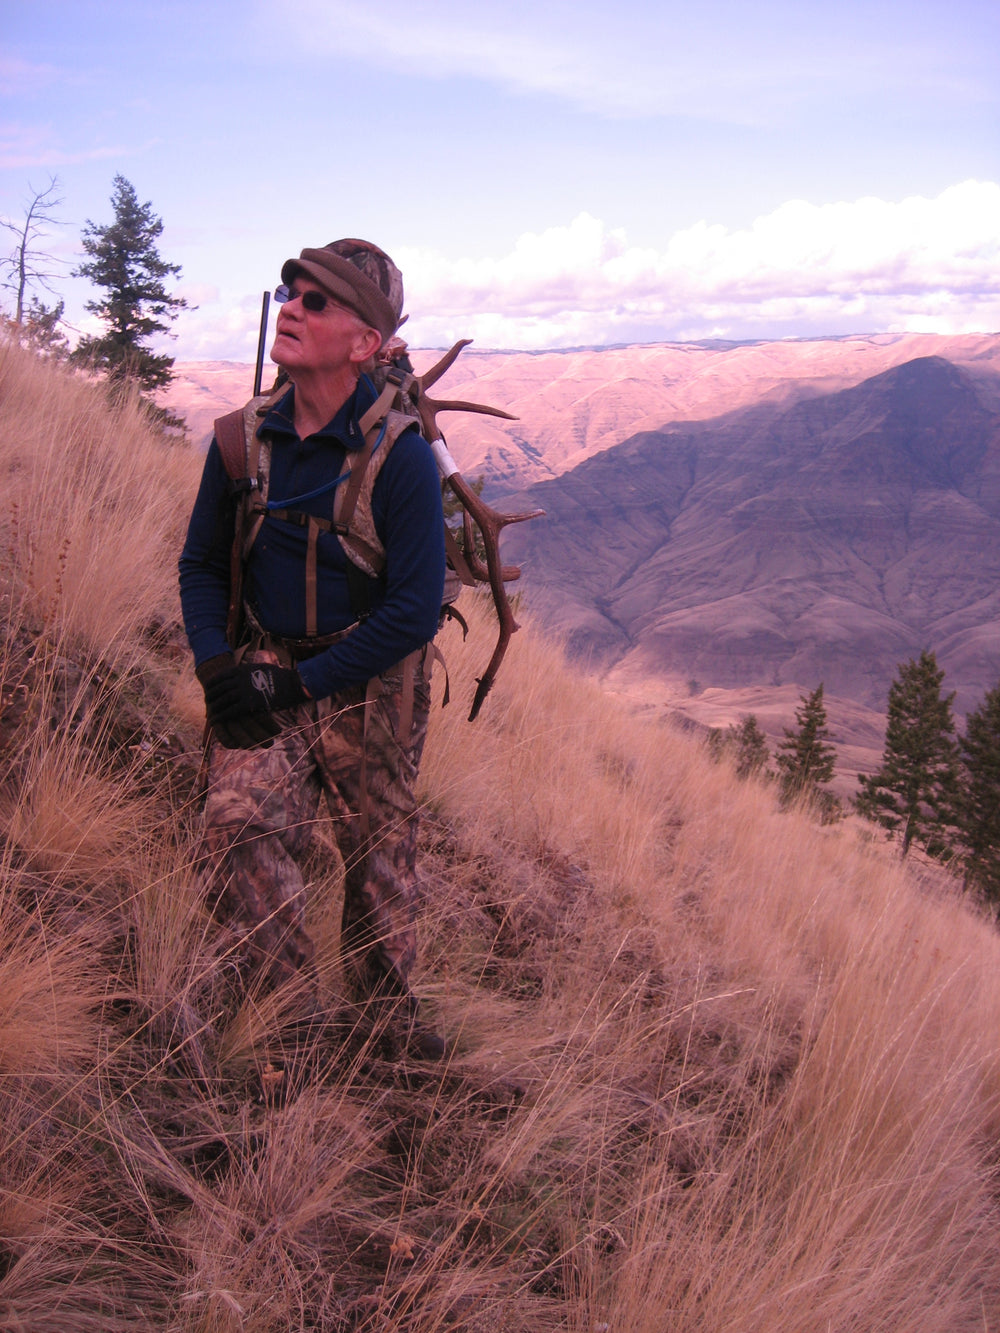 71 year old Elk Hunter with Orion back pack